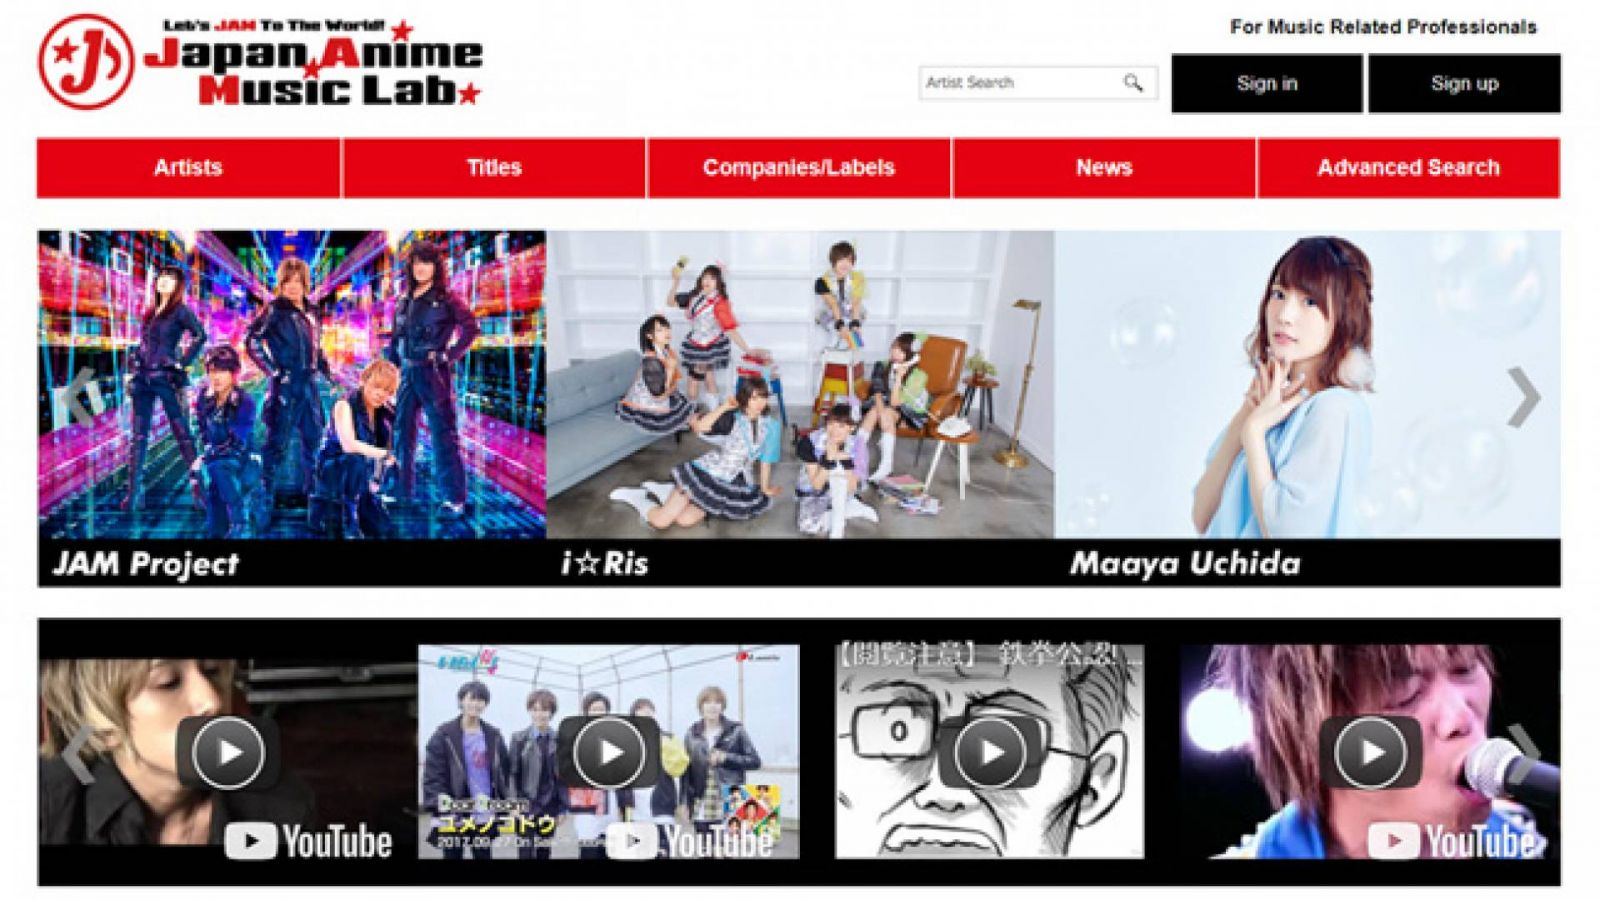 PROMIC Launches Japan Anime Music LAB. to Promote Anisong Industry Worldwide © JAPAN ANIME MUSIC LAB.